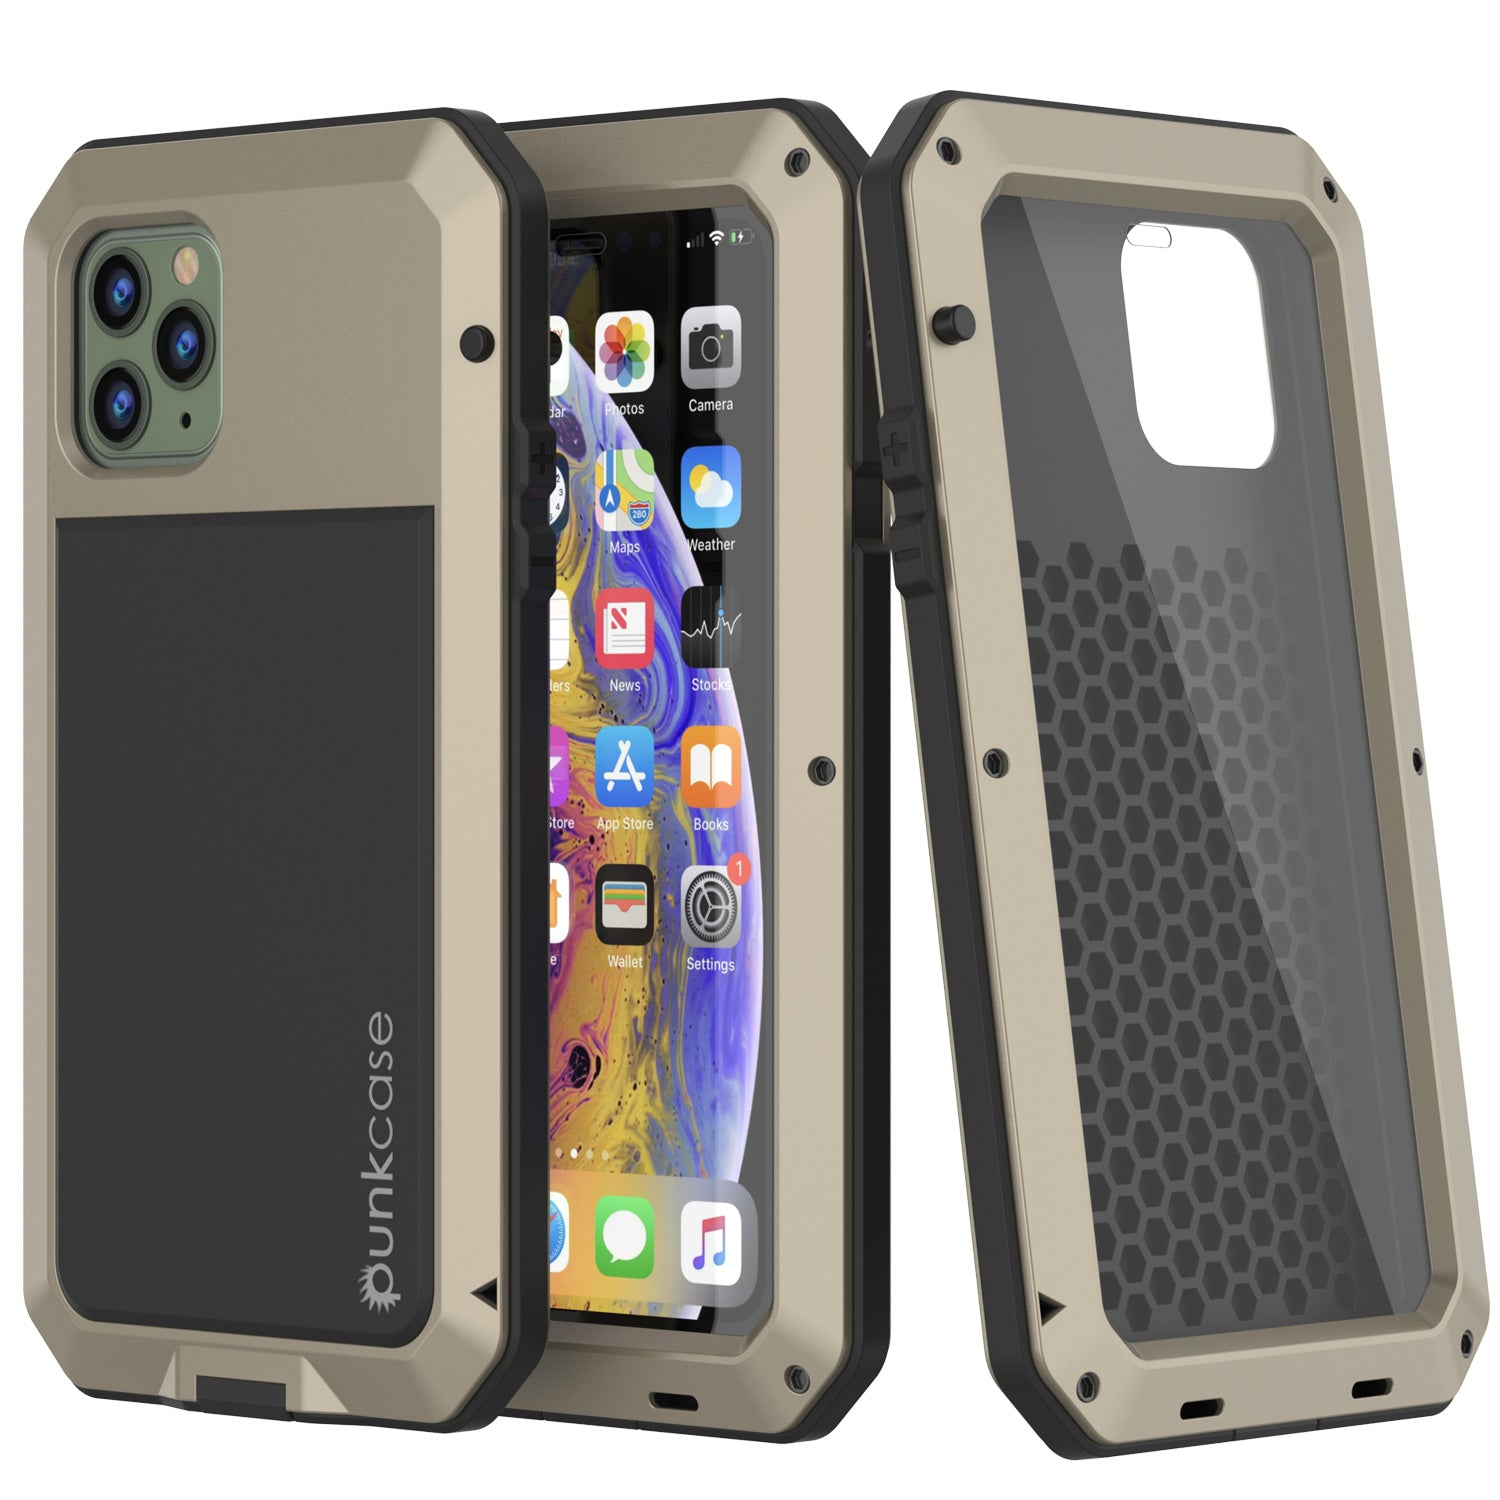 iPhone 11 Pro Max Metal Case, Heavy Duty Military Grade Armor Cover [shock proof] Full Body Hard [Gold]